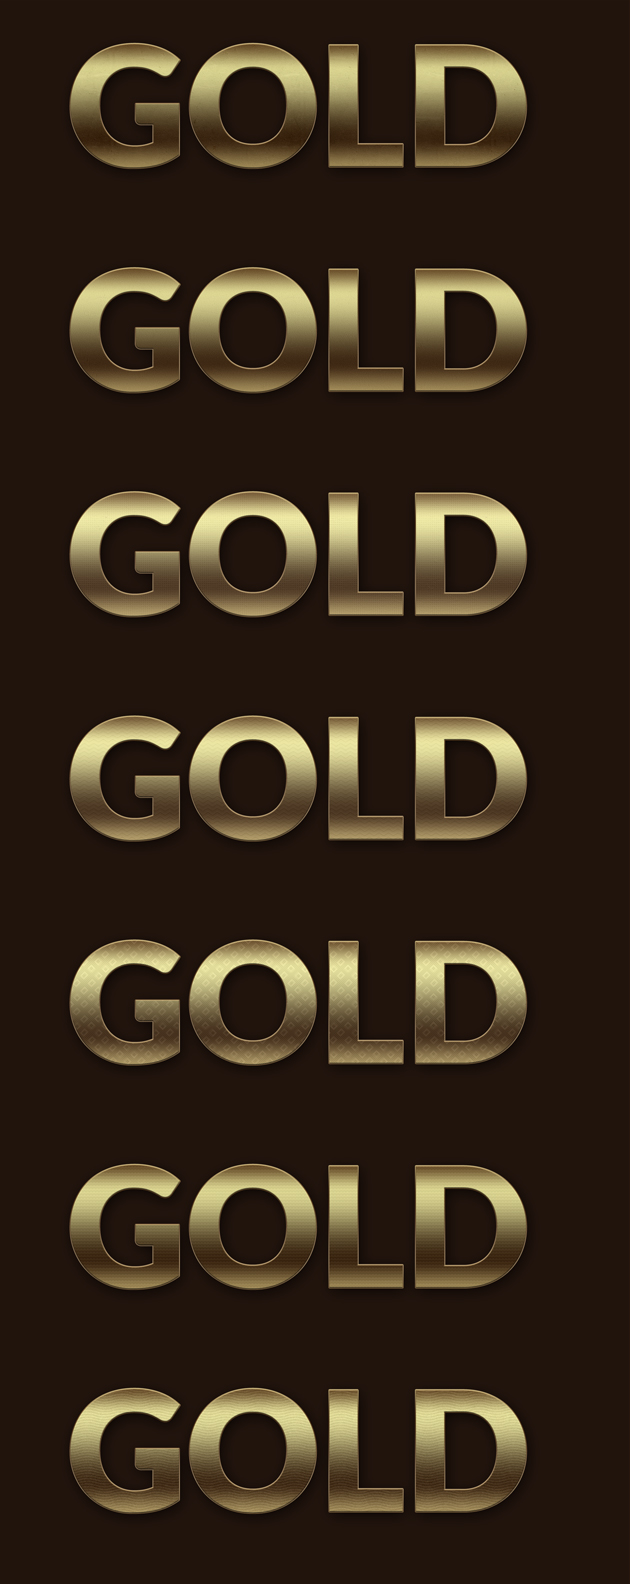 Gold-Photoshop-Styles designtnt addons gold styles large